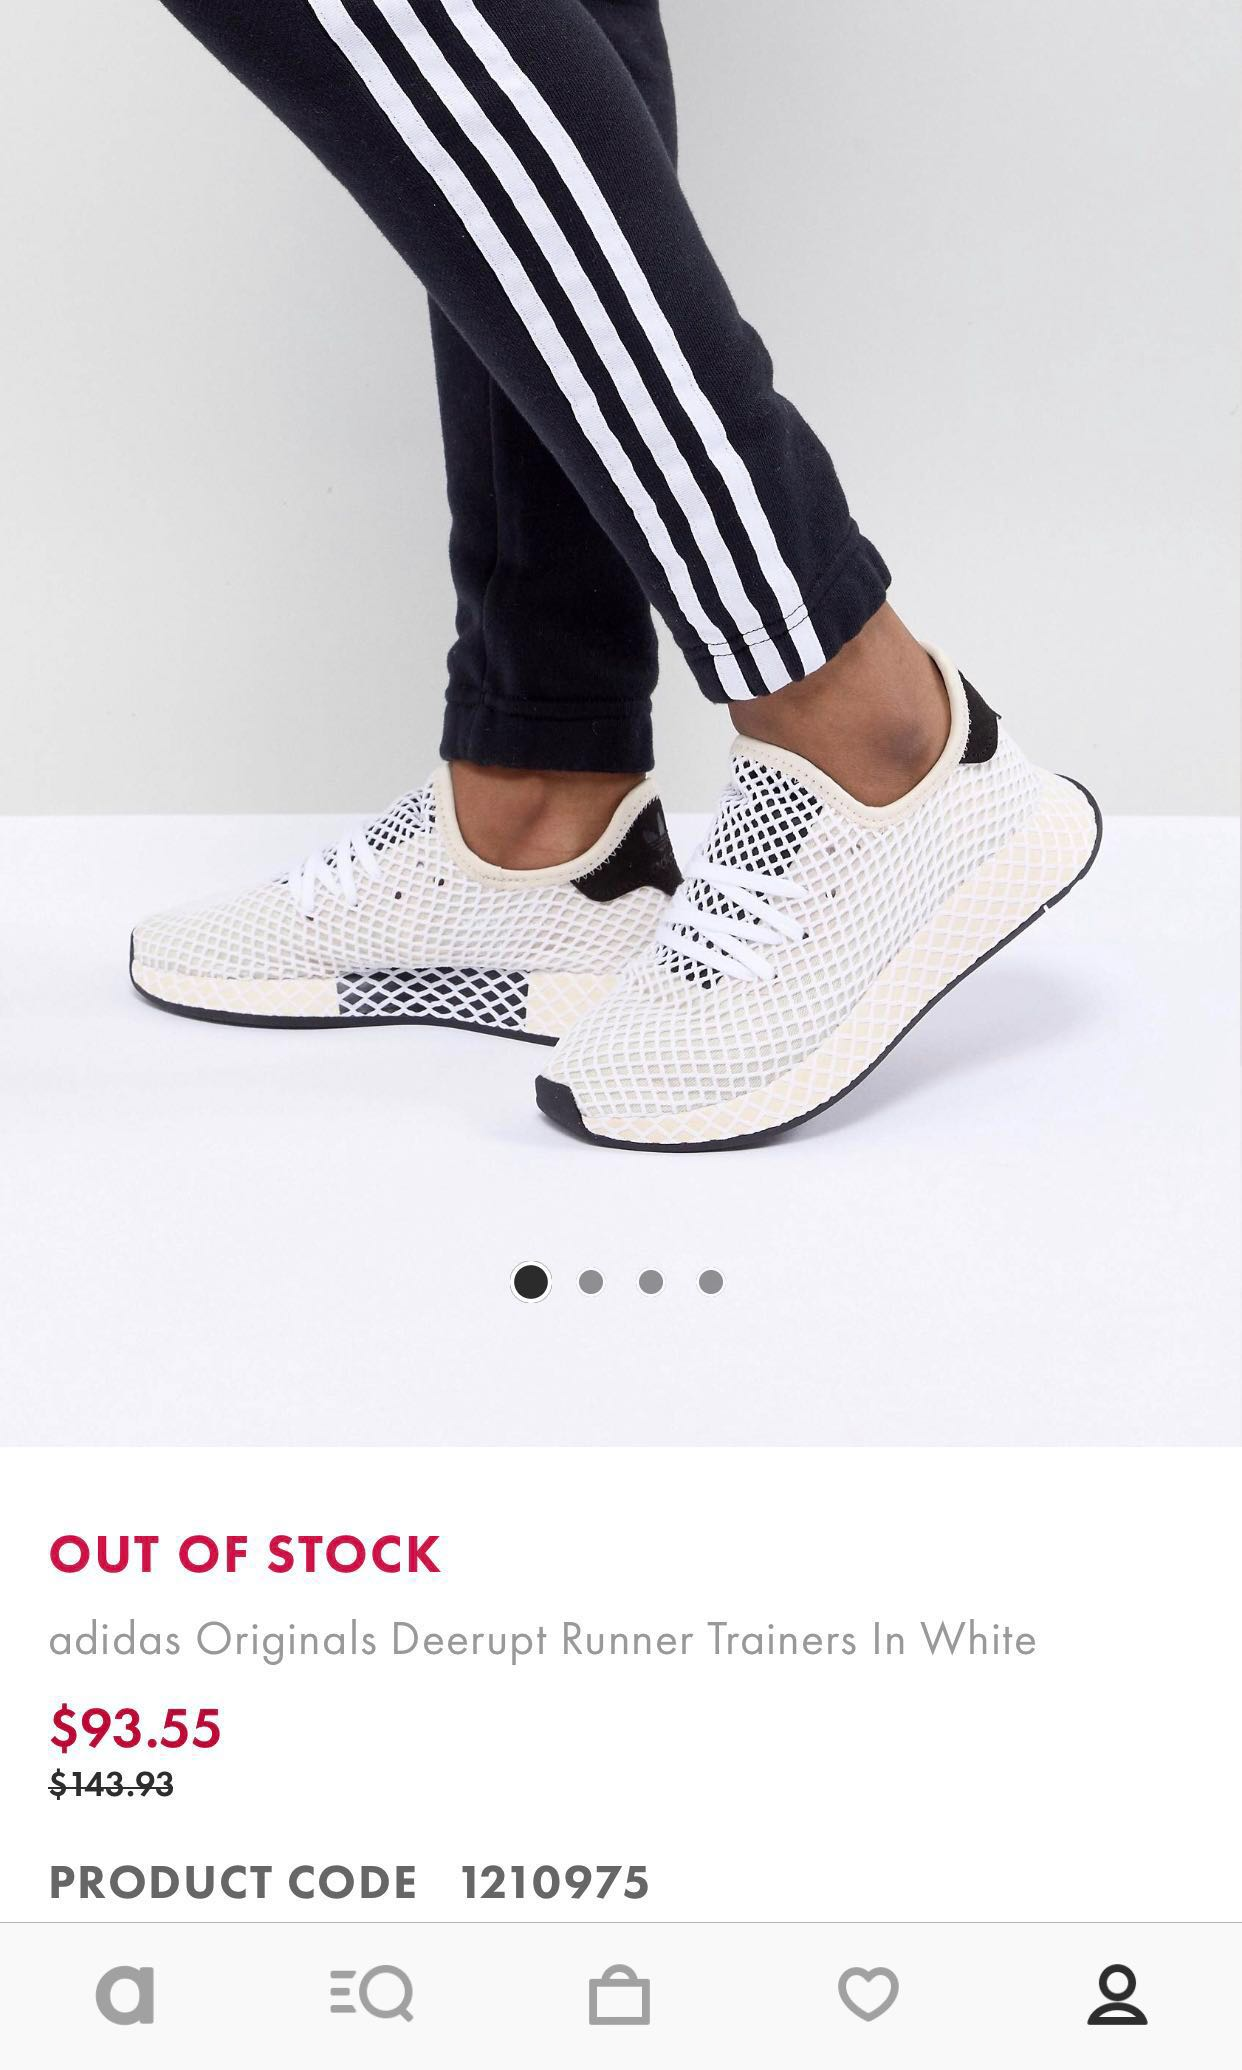 fea4dc60198b2 adidas original deerupt runner trainers in white